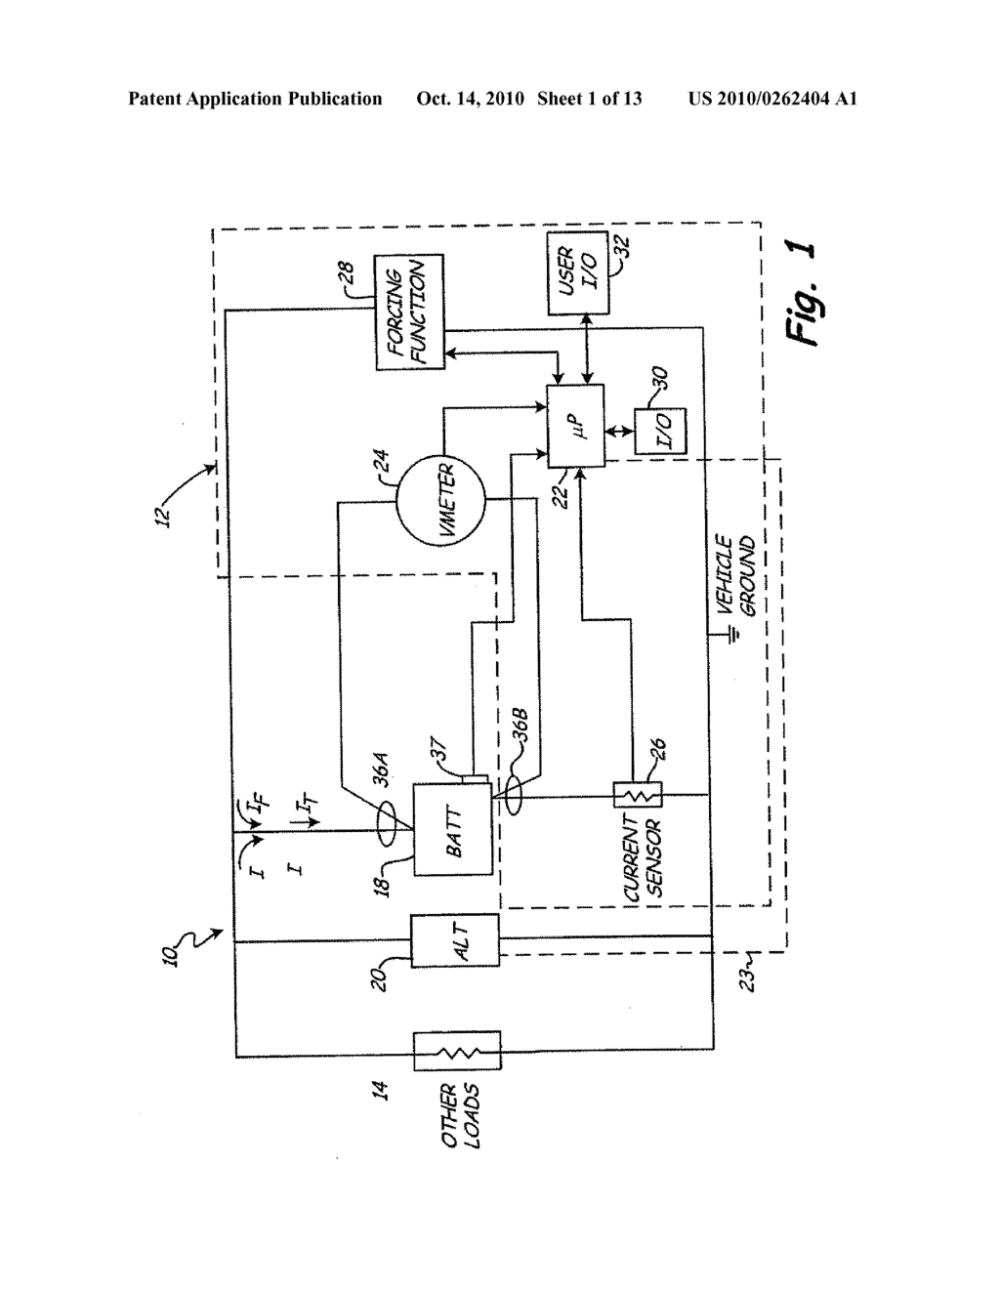 medium resolution of automotive vehicle electrical system diagnostic device diagram schematic and image 02